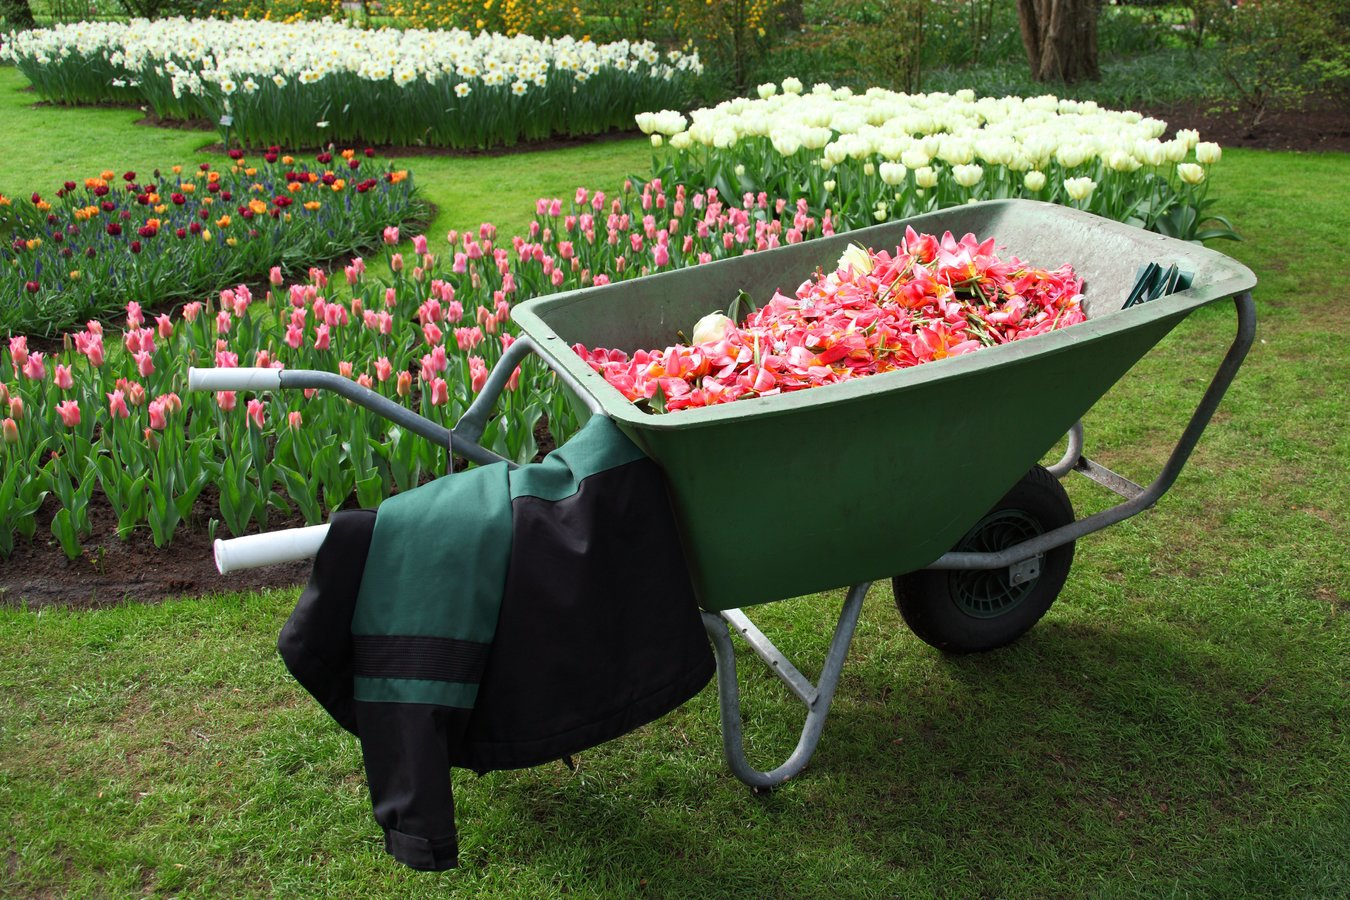 work-grass-plant-lawn-wheel-cart-1159034-pxherecom